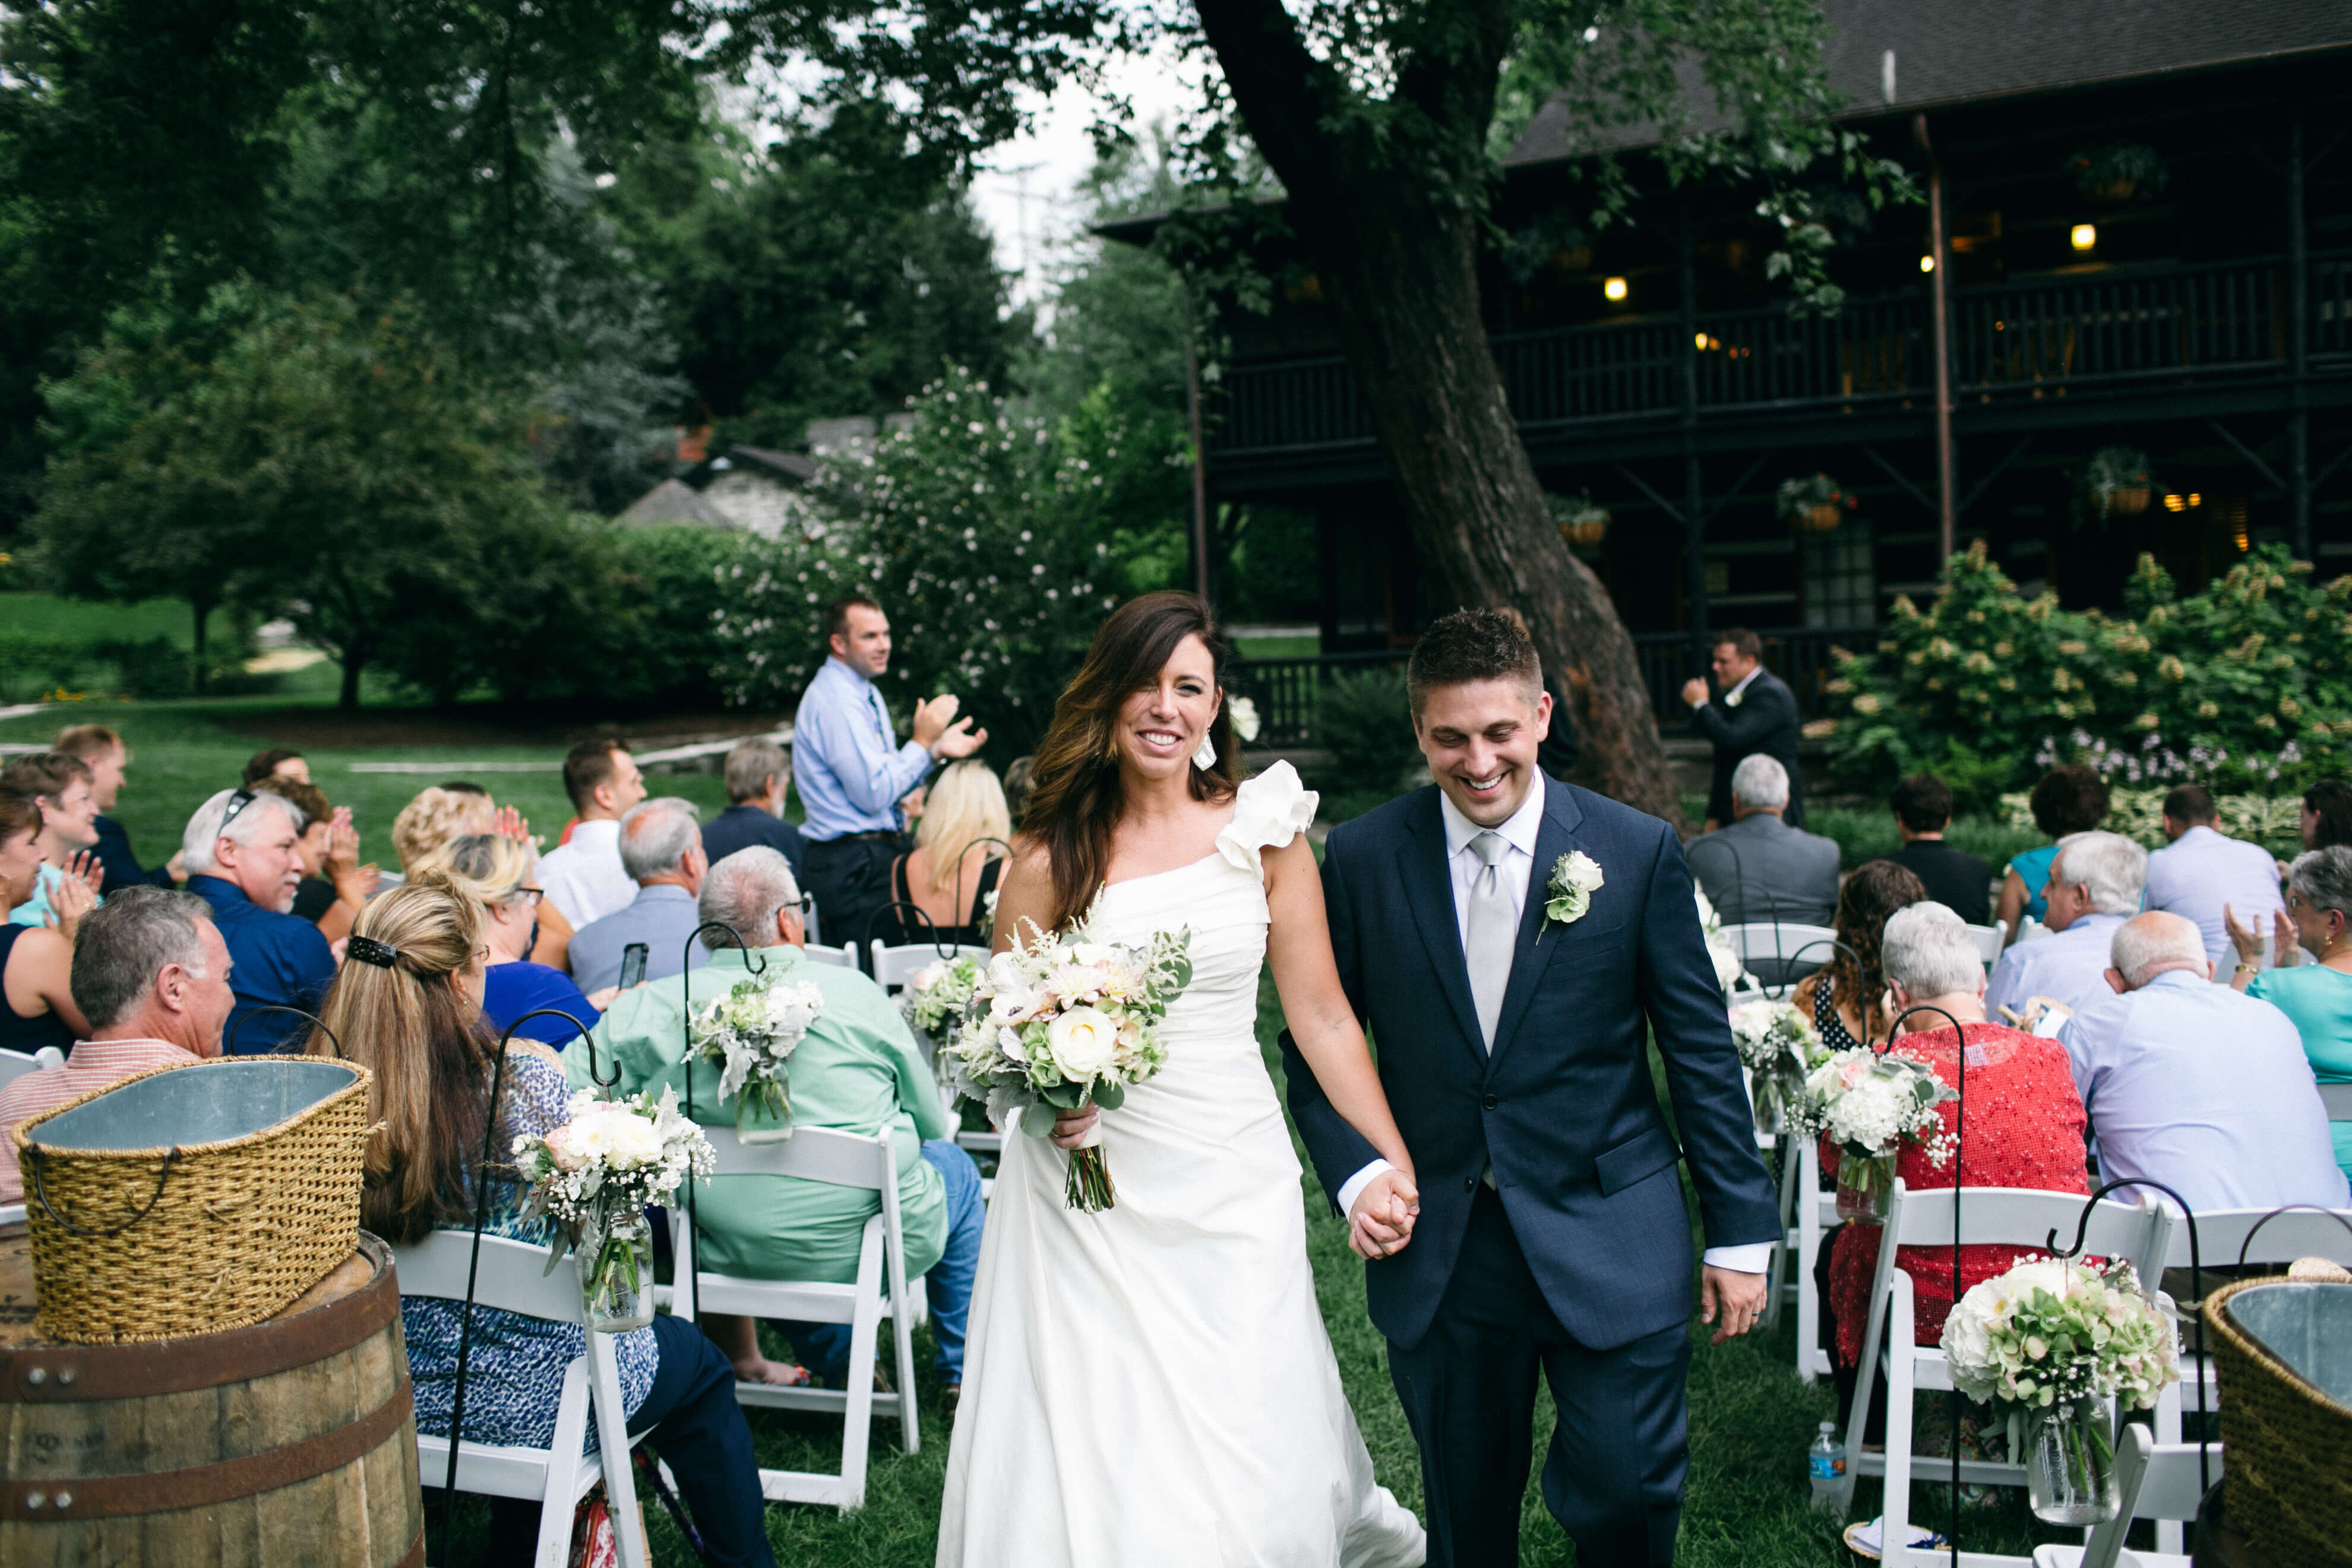 Our wedding at Buffalo Trace Distillery